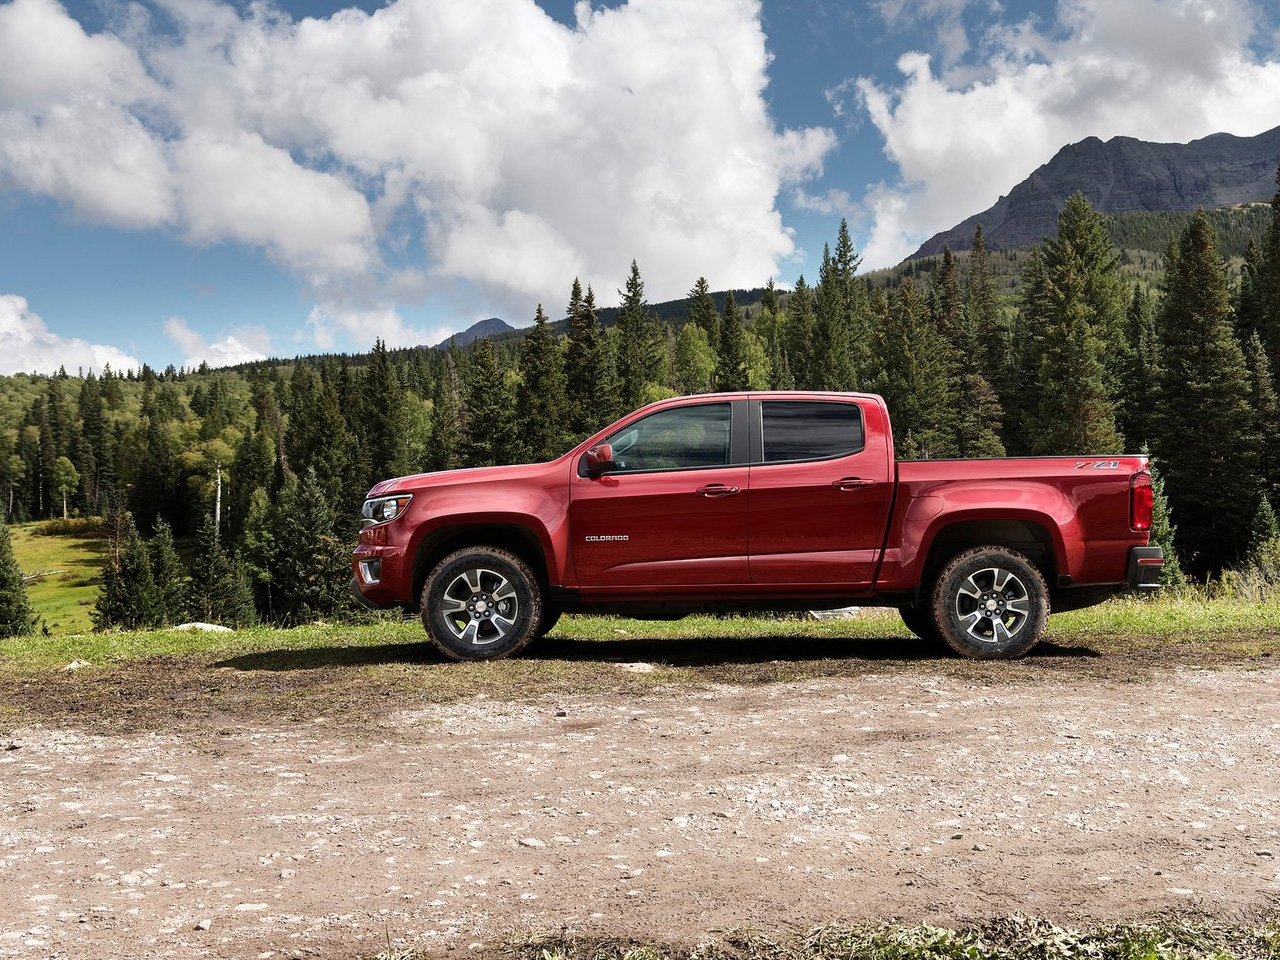 Chevy Colorado Wallpaper - WallpaperSafari